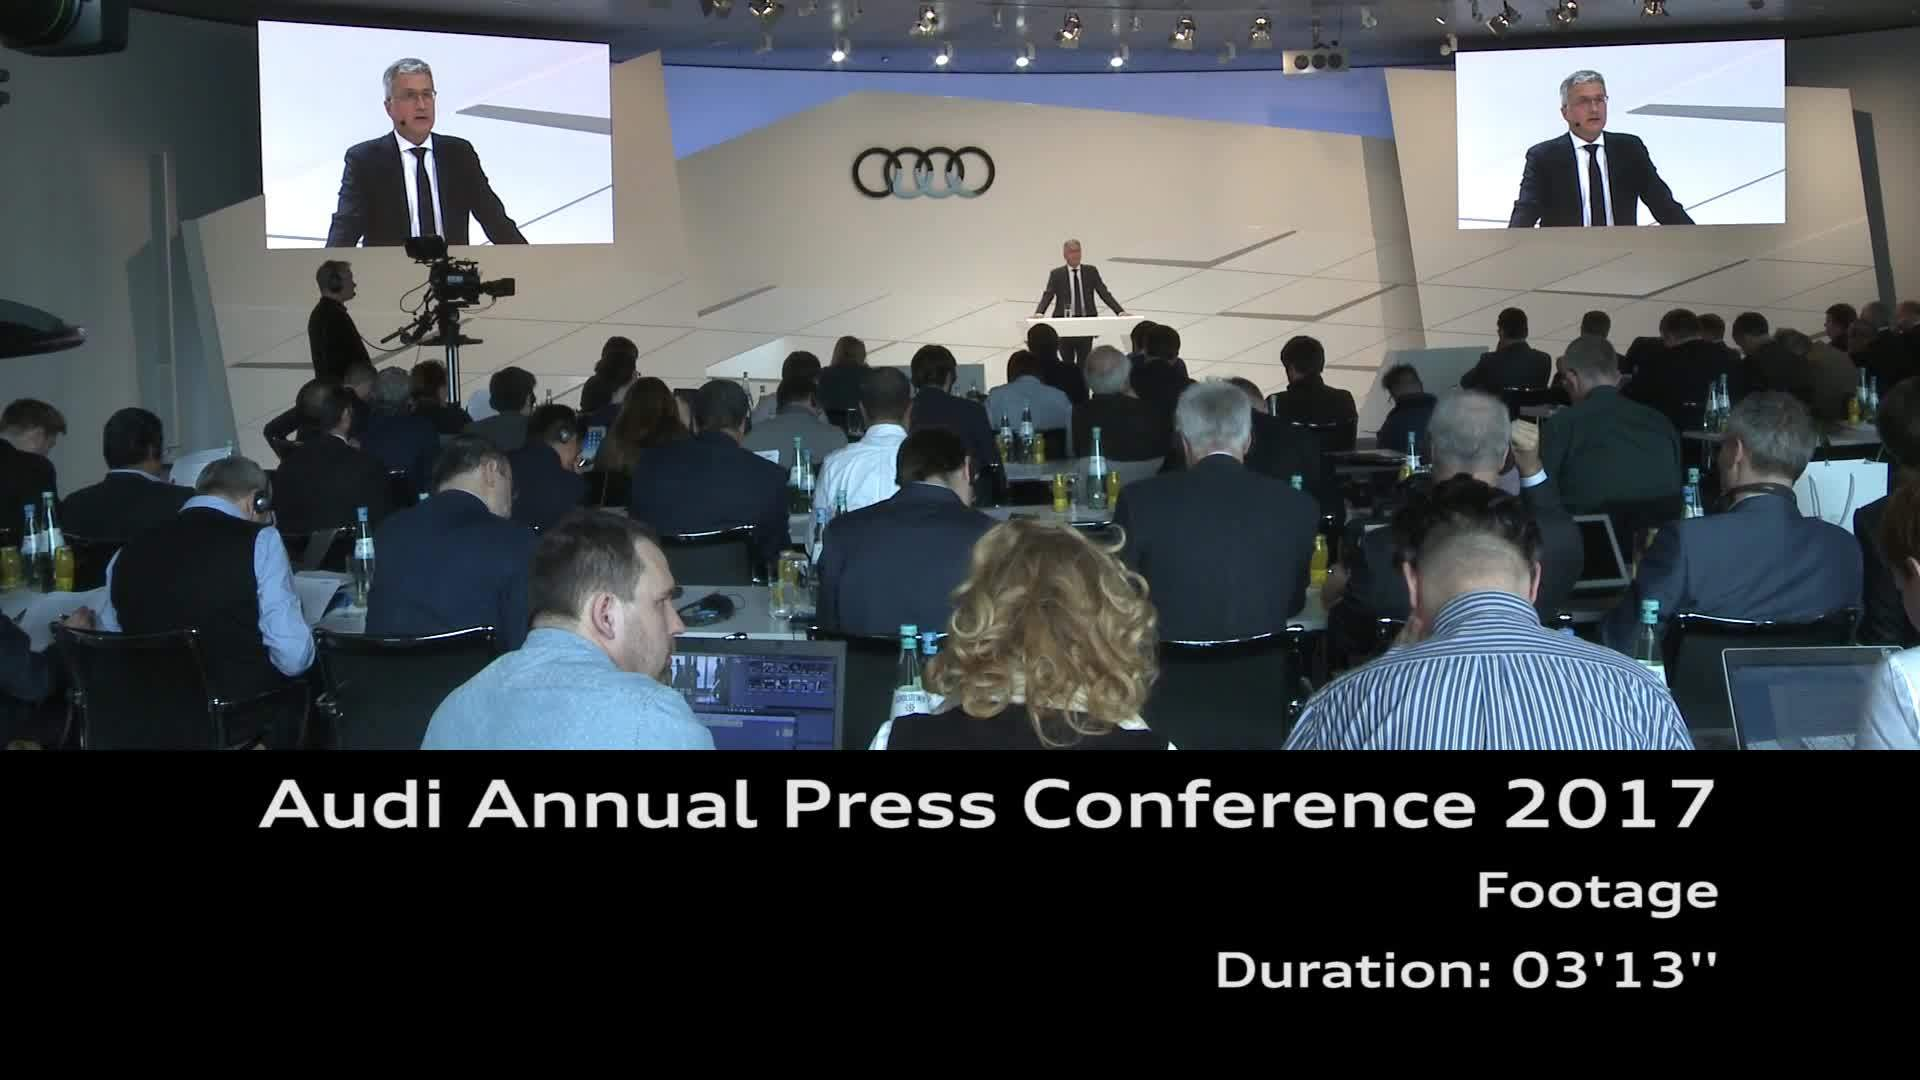 Audi Annual Press Conference 2017 Footage